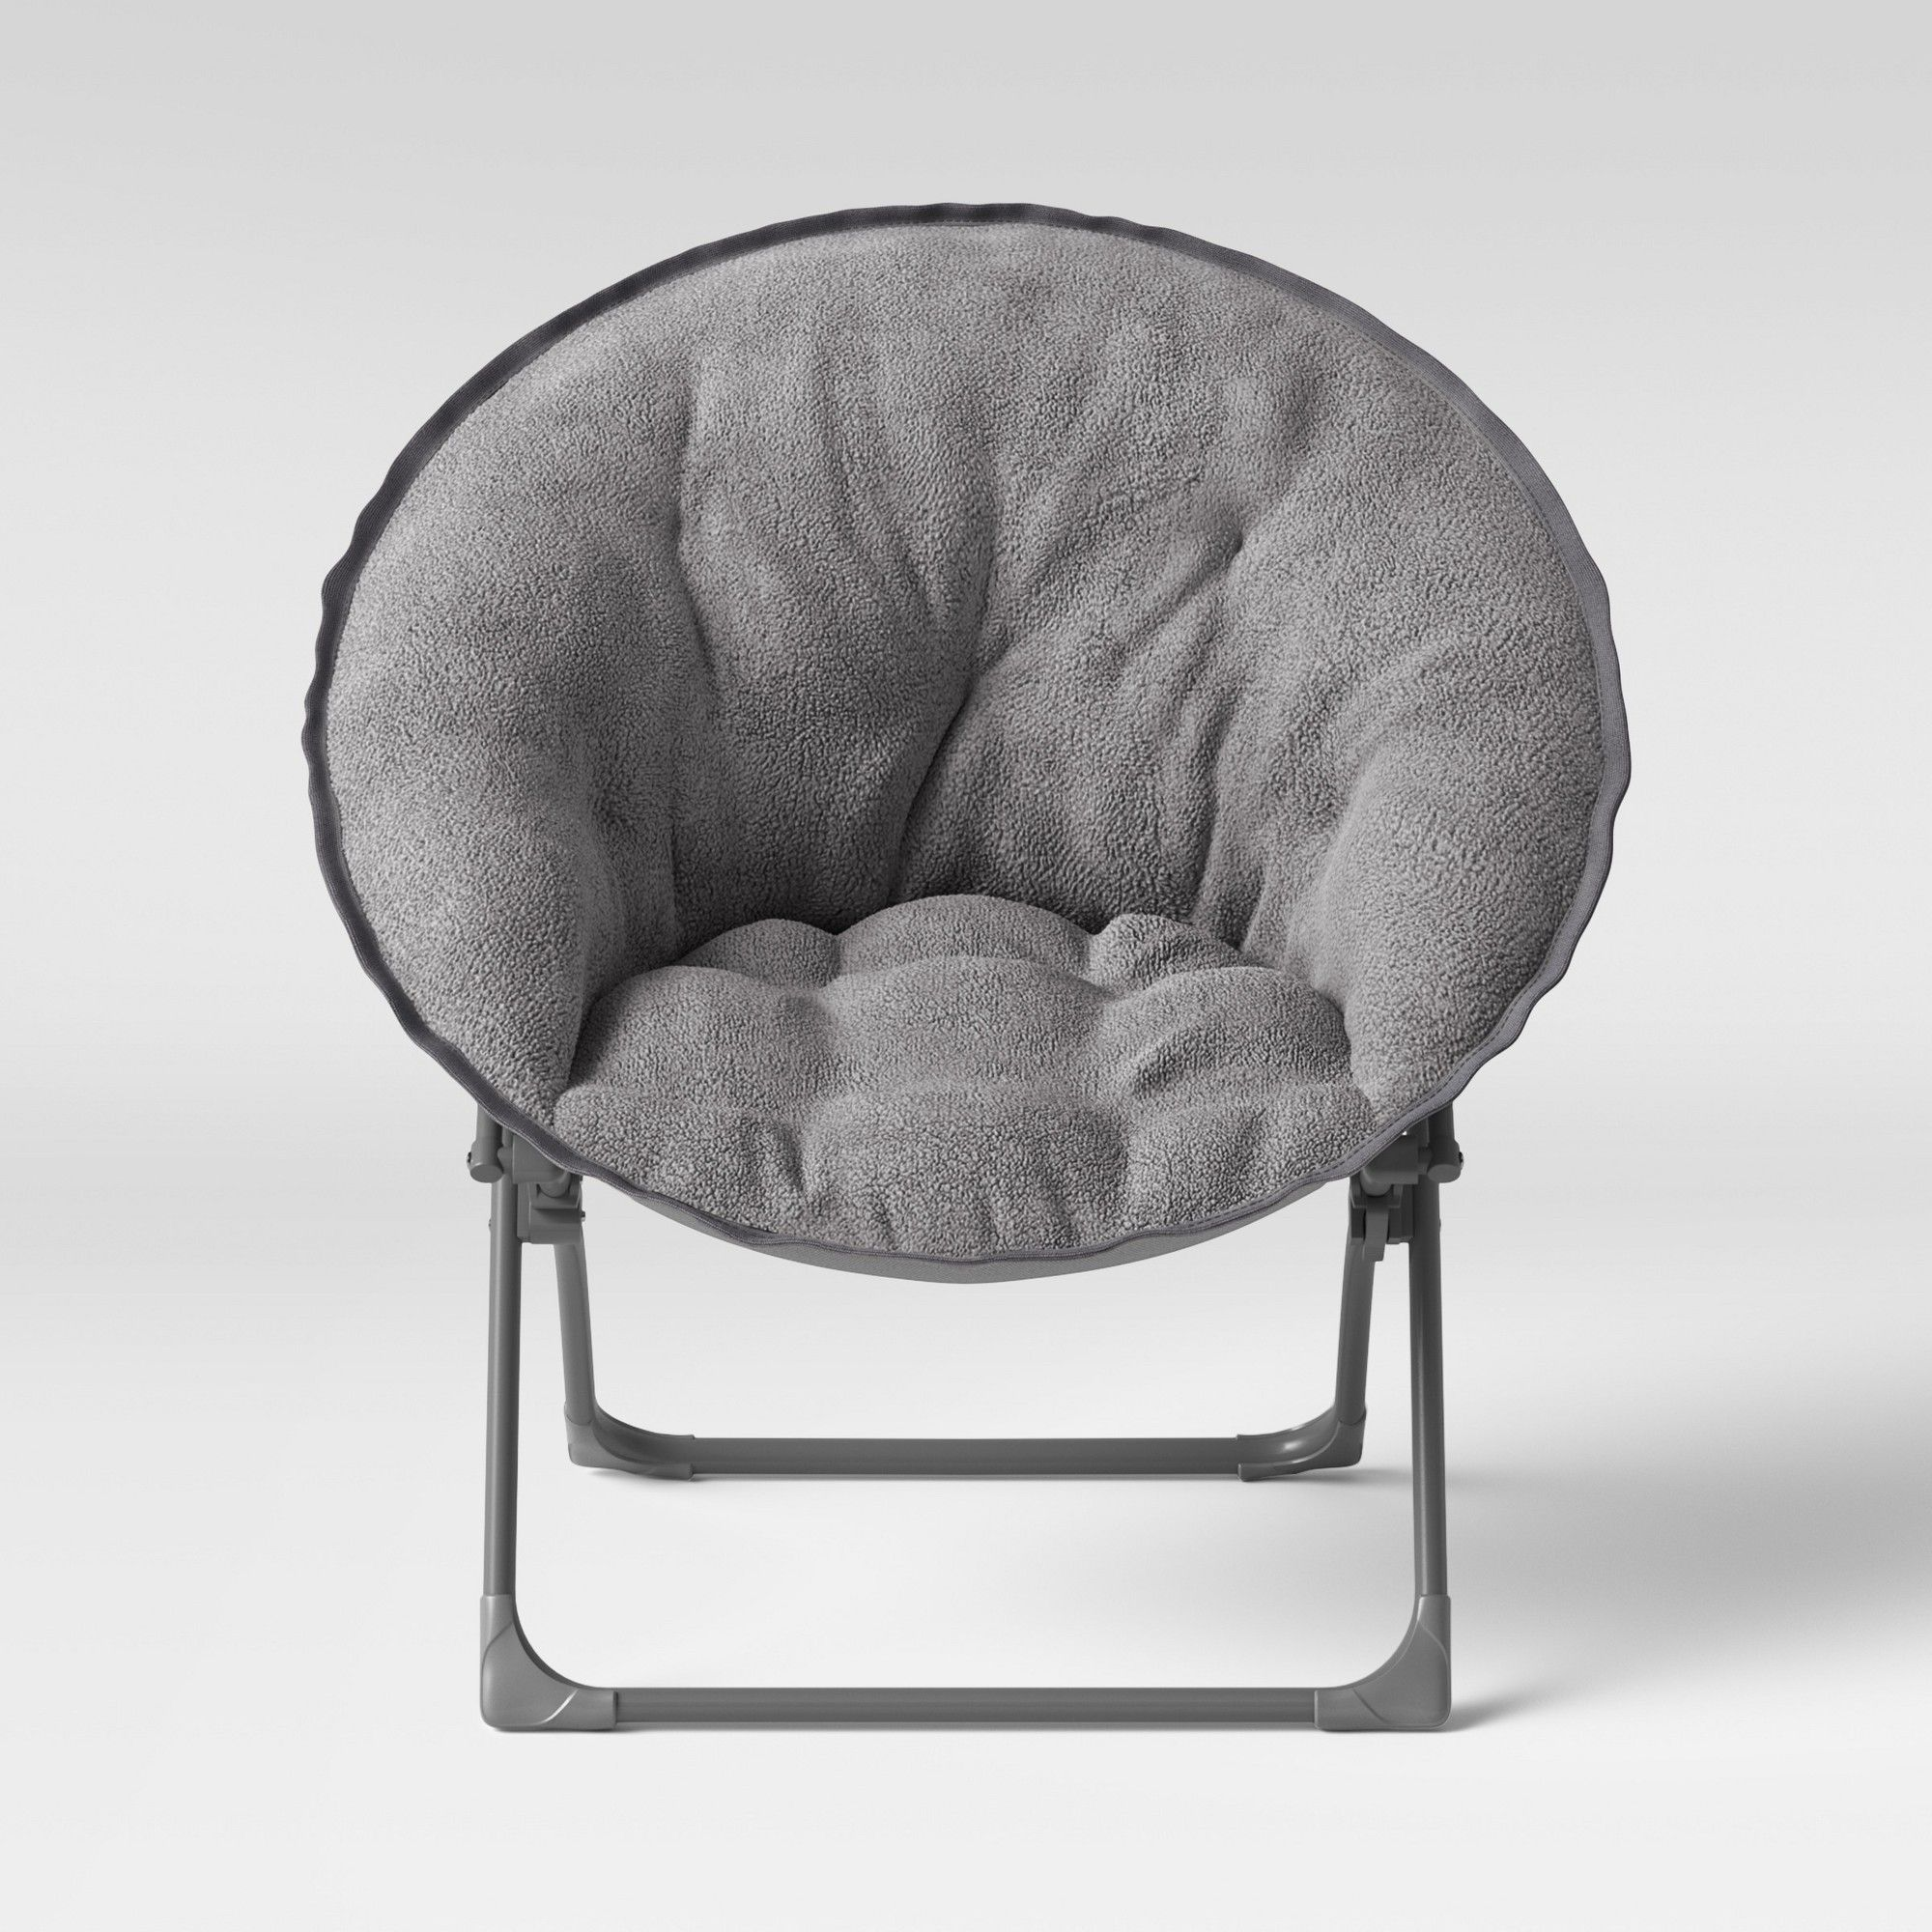 Sensational Fuzzy Kids Saucer Chair Gray Pillowfort Products Grey Forskolin Free Trial Chair Design Images Forskolin Free Trialorg